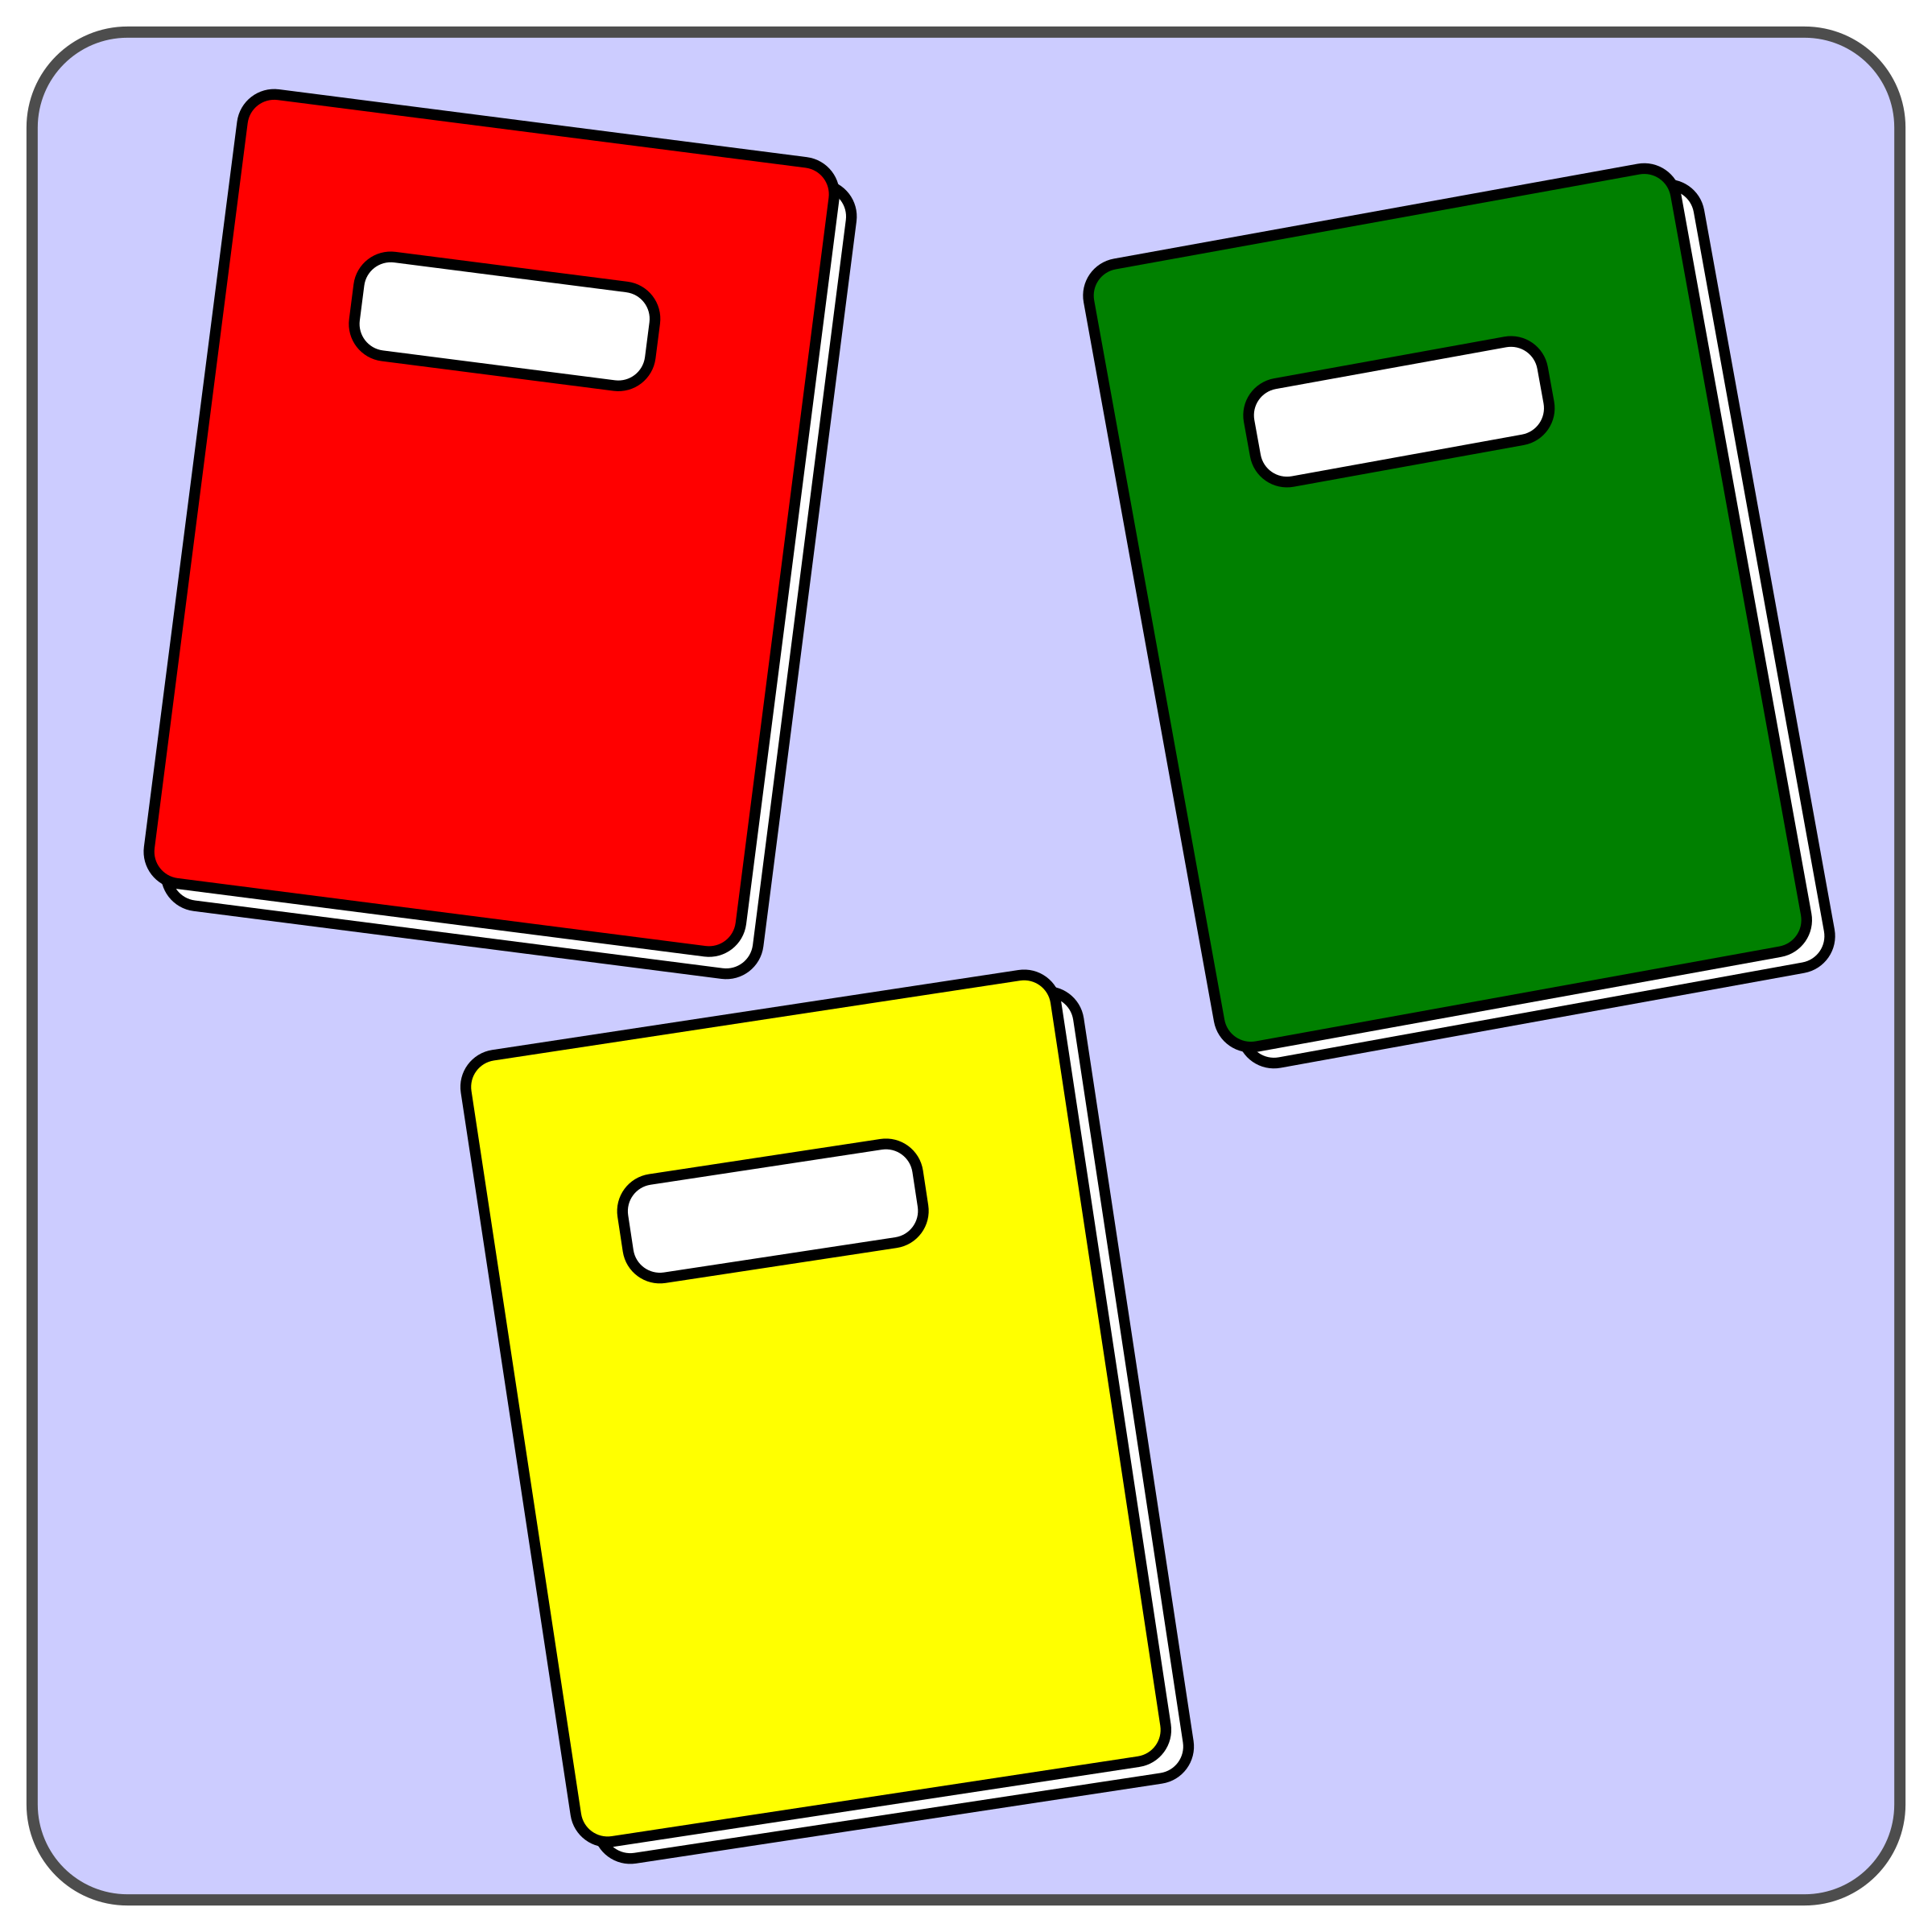 Workbooks icon by CoD_fsfe